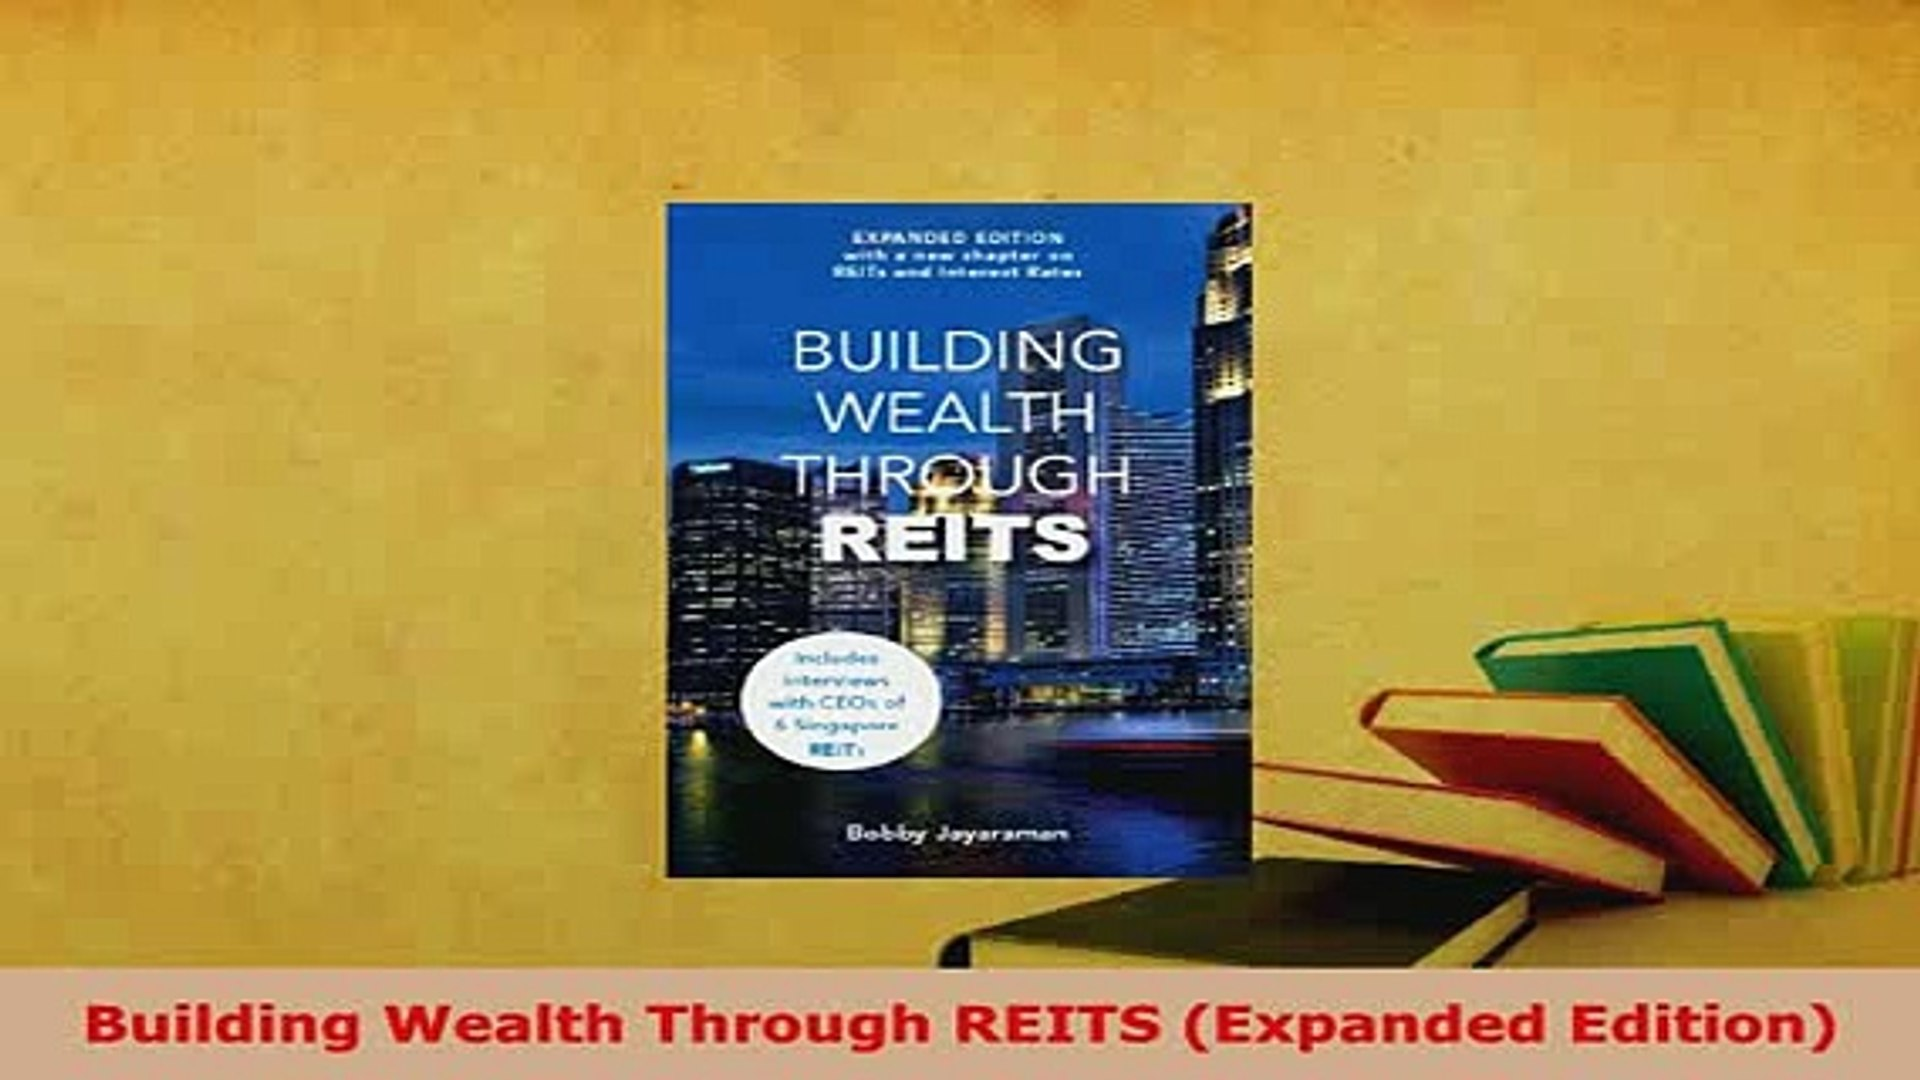 Building Wealth Through REITS PDF Free Download